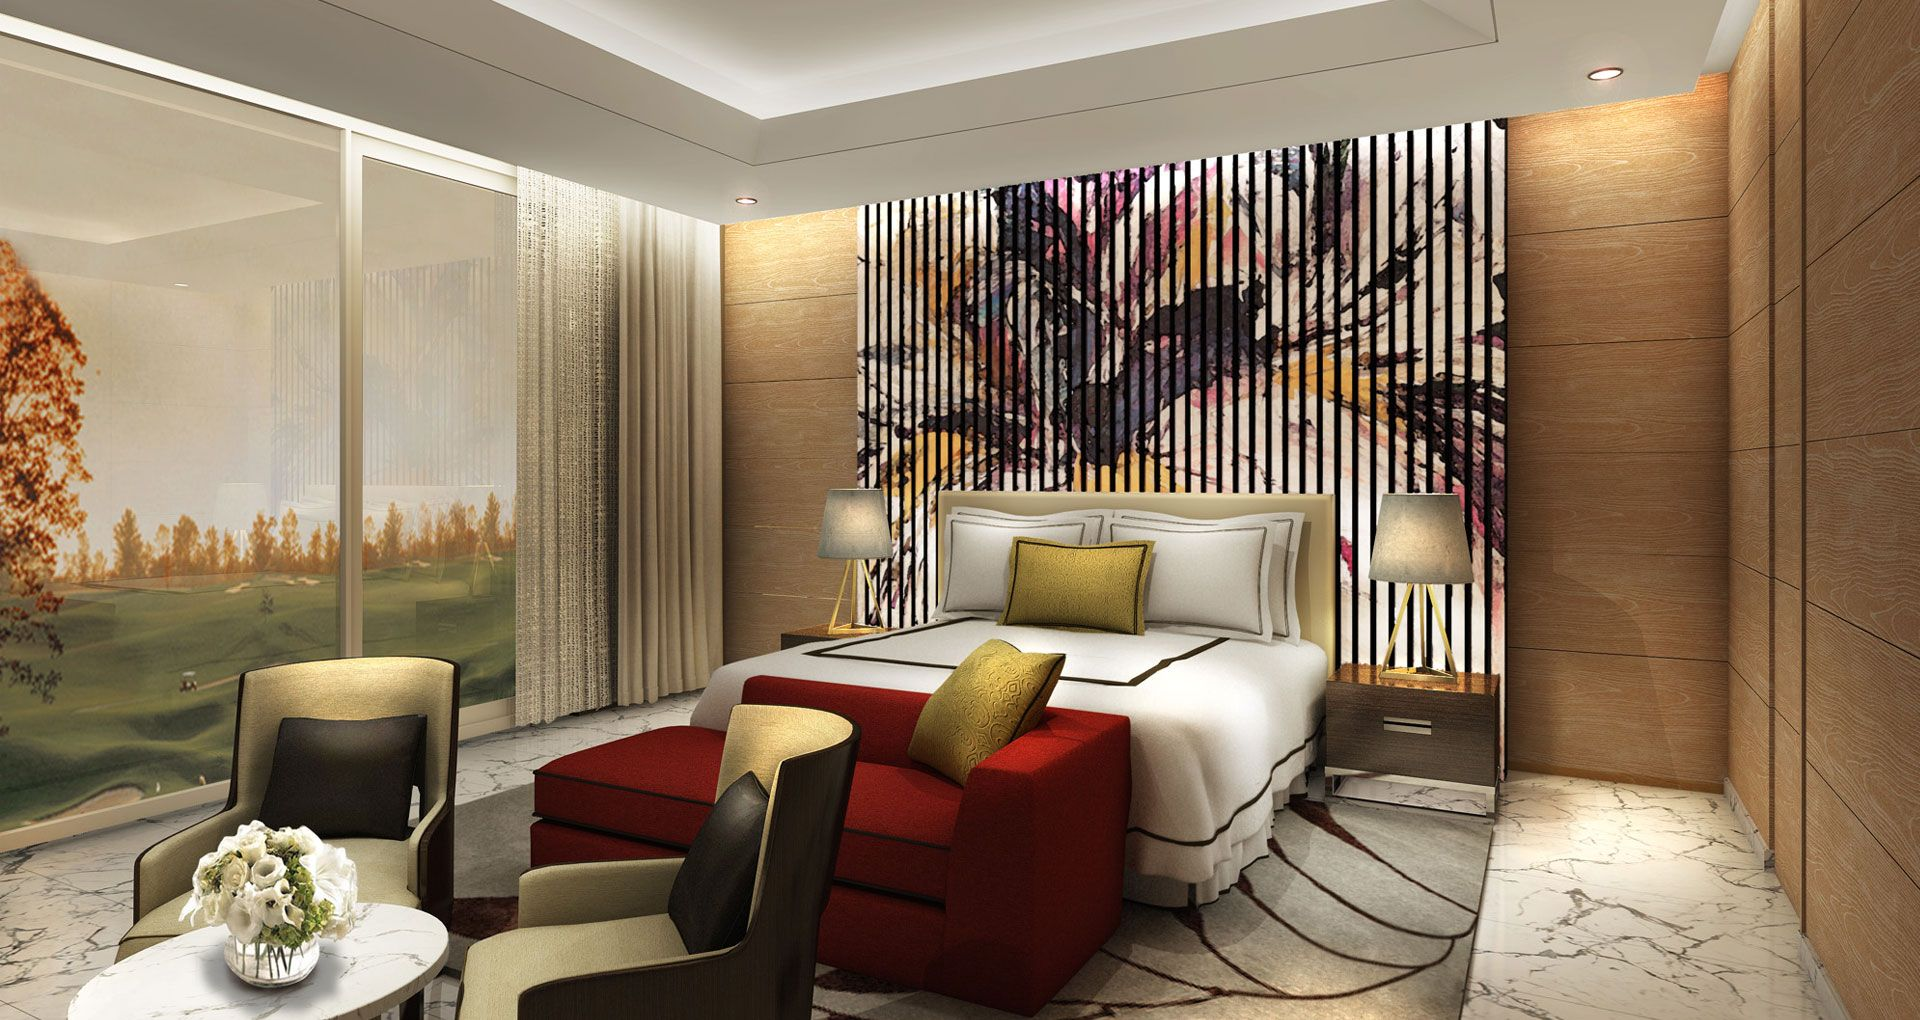 Golf Residences and Club House interior design by studio hba